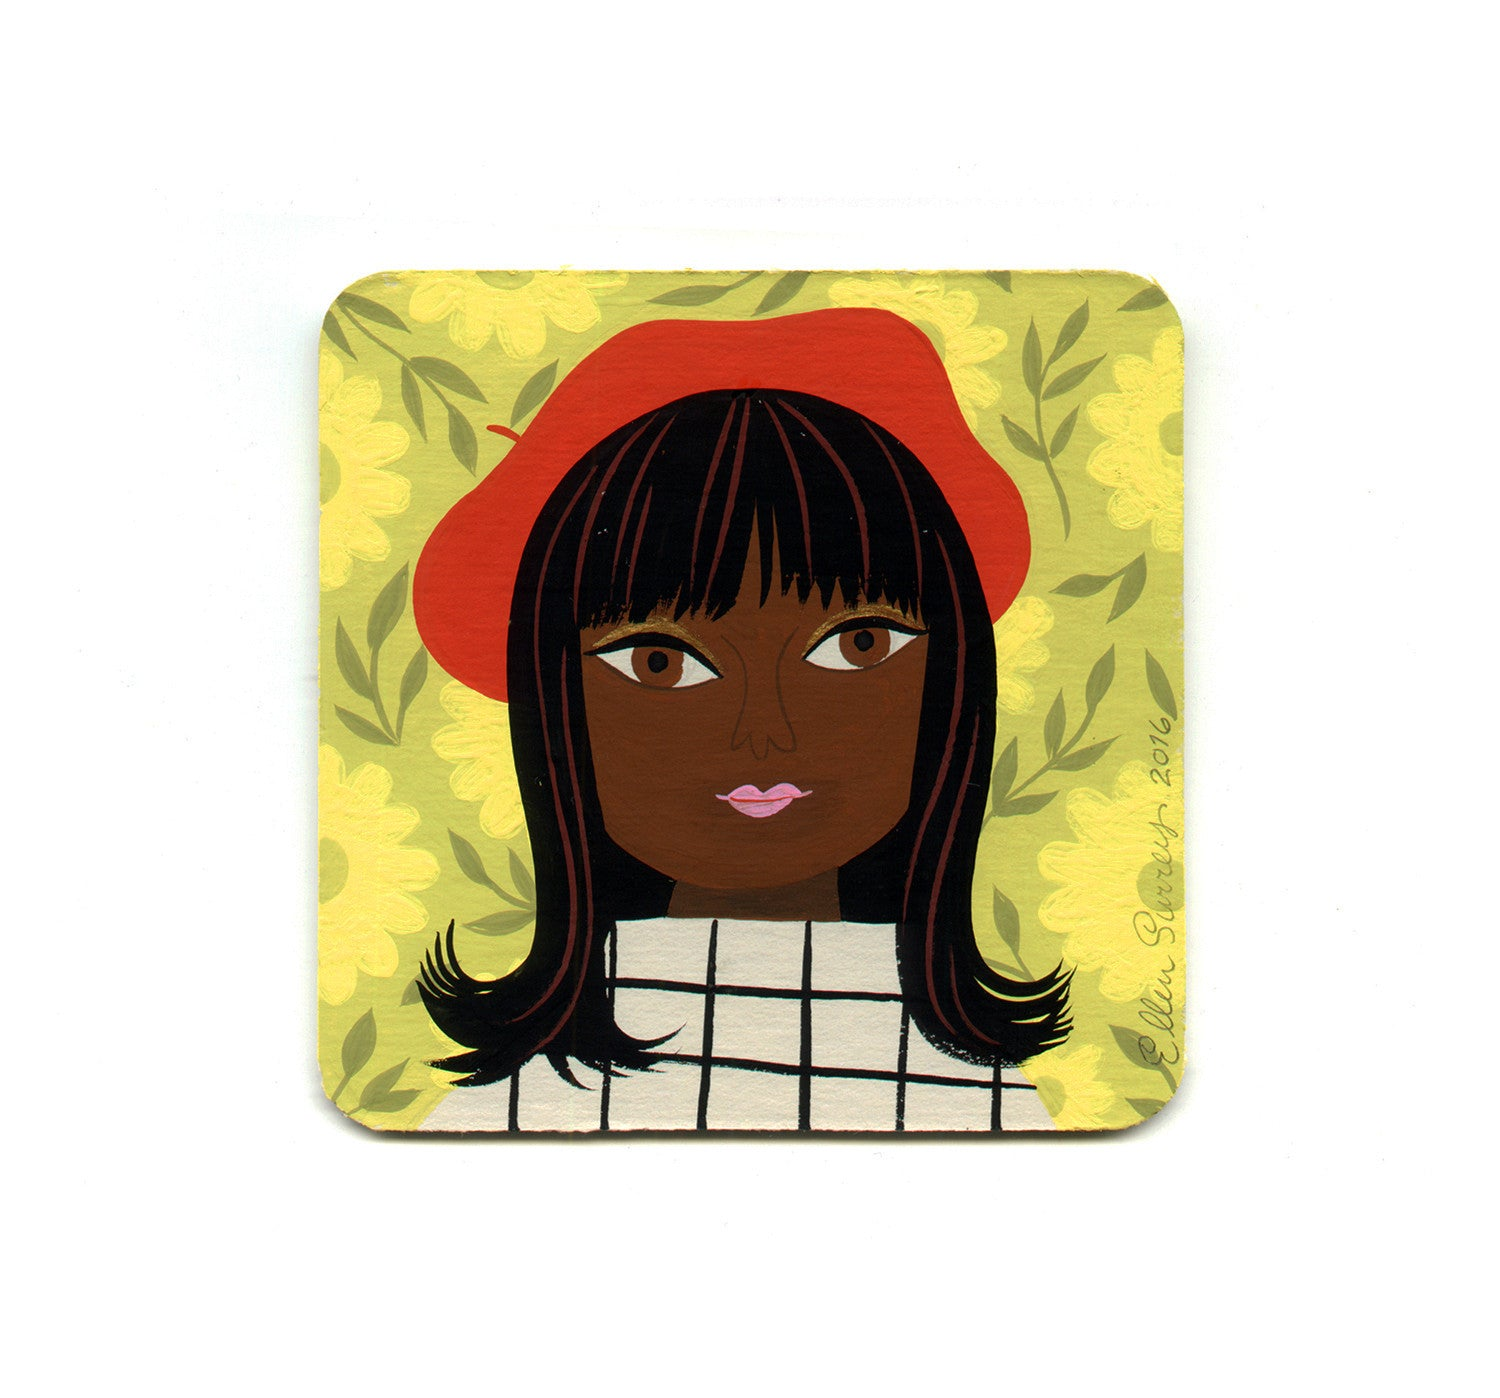 S1 Ellen Surrey - Yellow Mod Girl Coaster